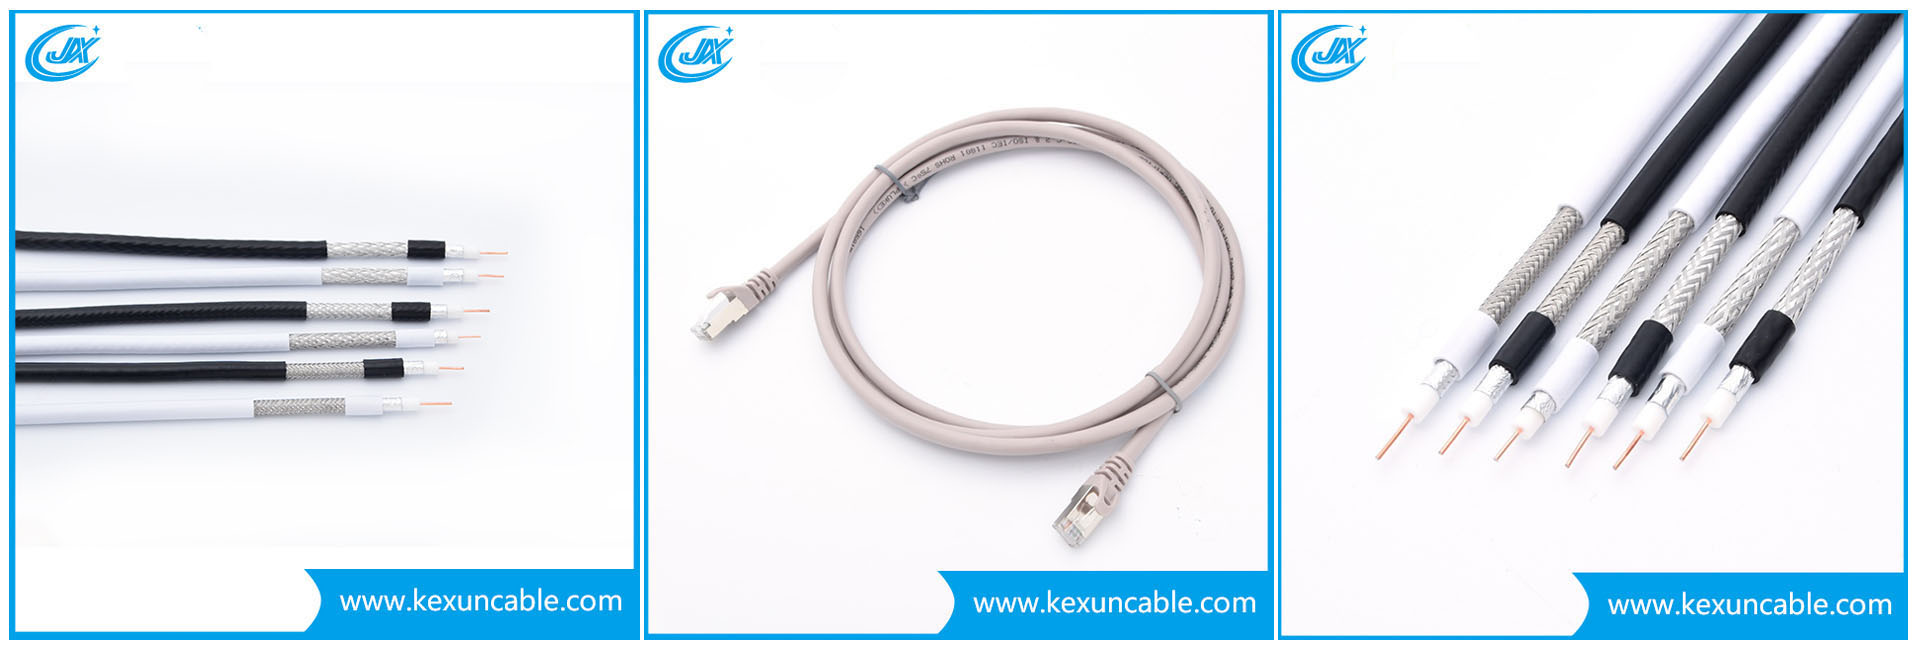 Do You Know The Common LAN Cable?